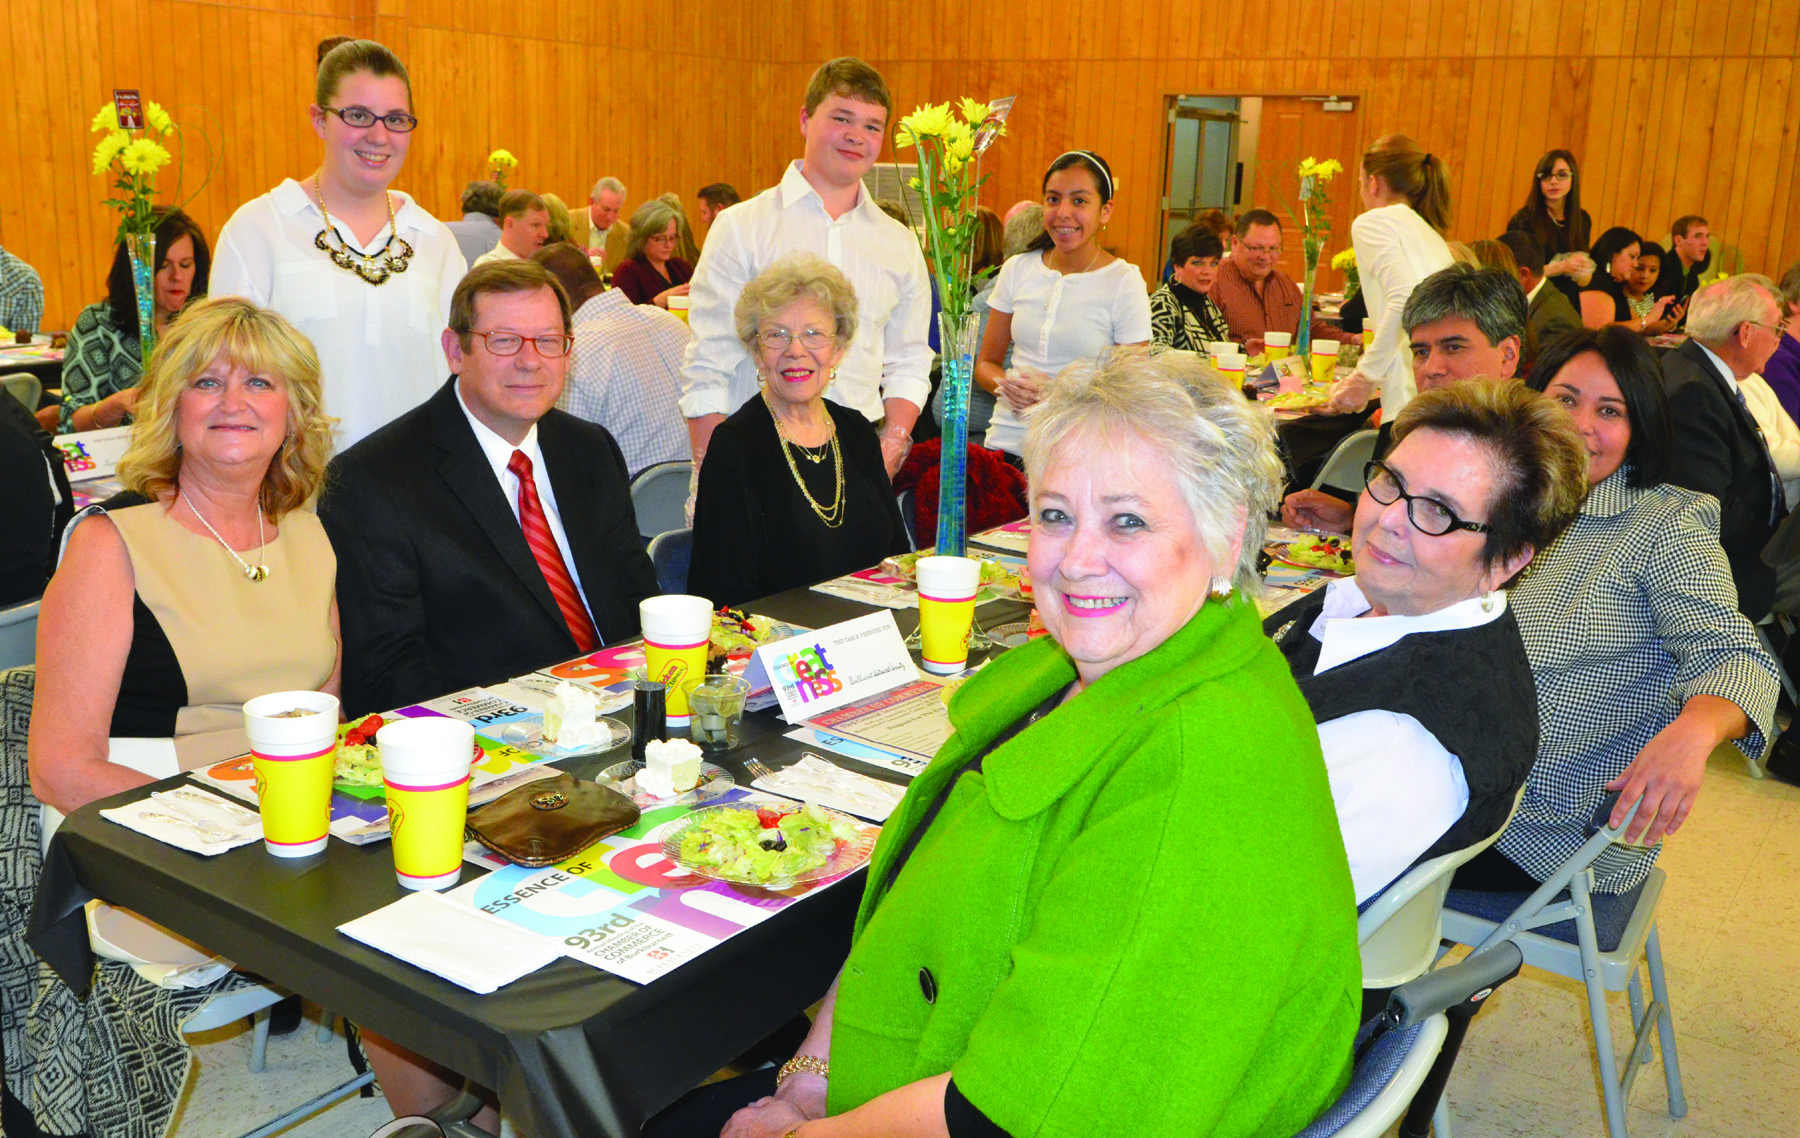 Members and Guest at the 2015 Chamber Banquet